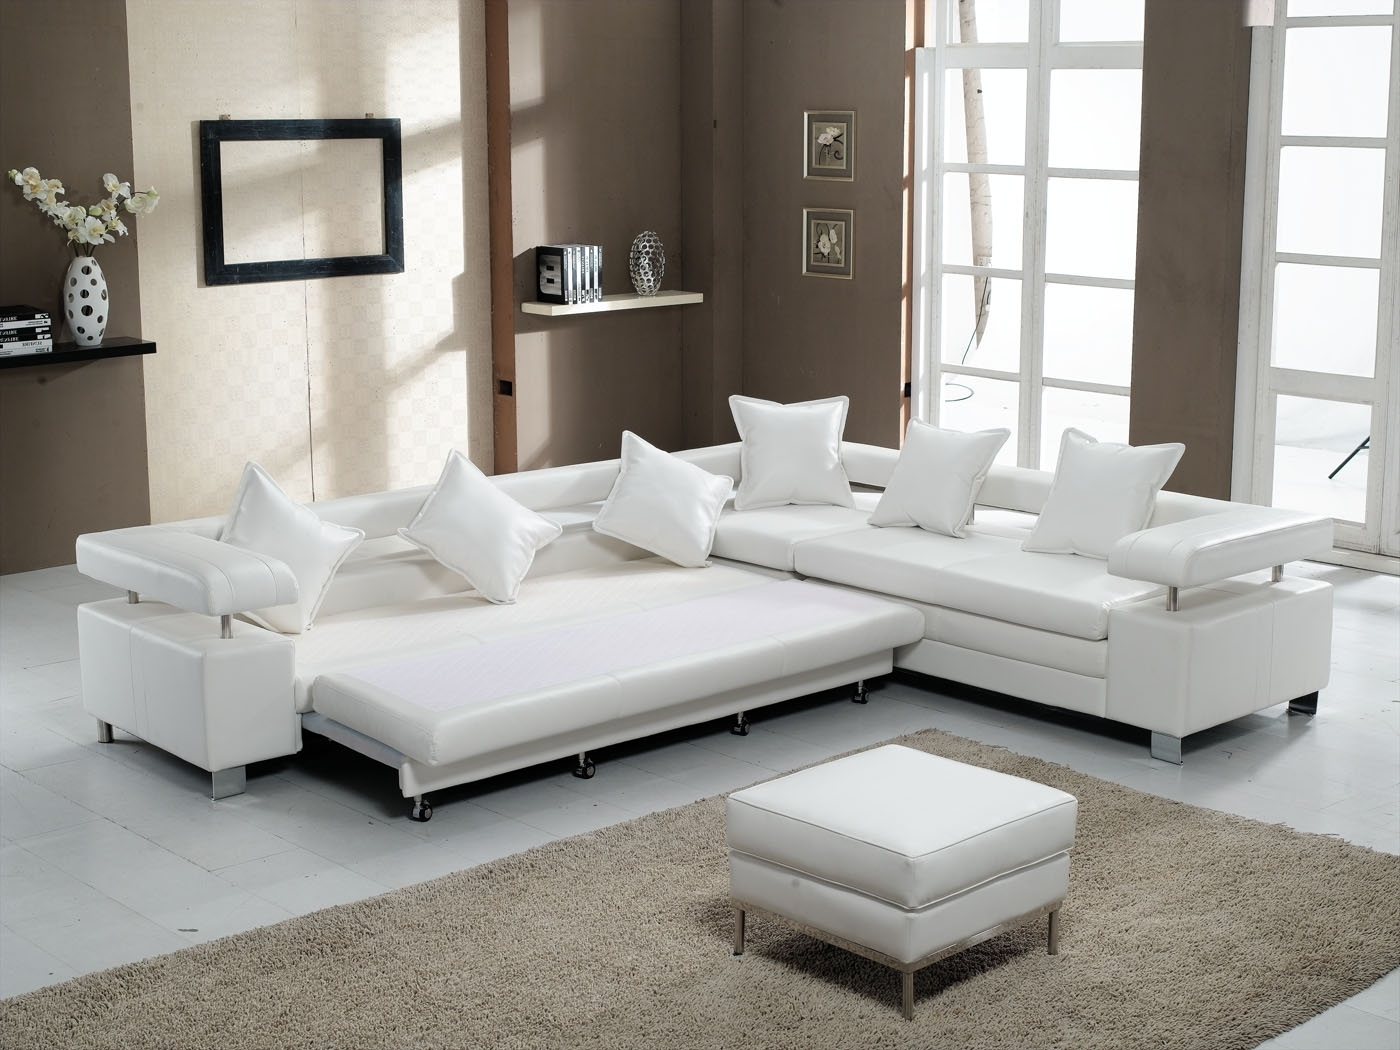 Most Recent Sectional Sleeper Sofas With Ottoman Pertaining To 3 Piece White Leather Sectional Sofa With Stainless Steel Legs And (View 10 of 20)